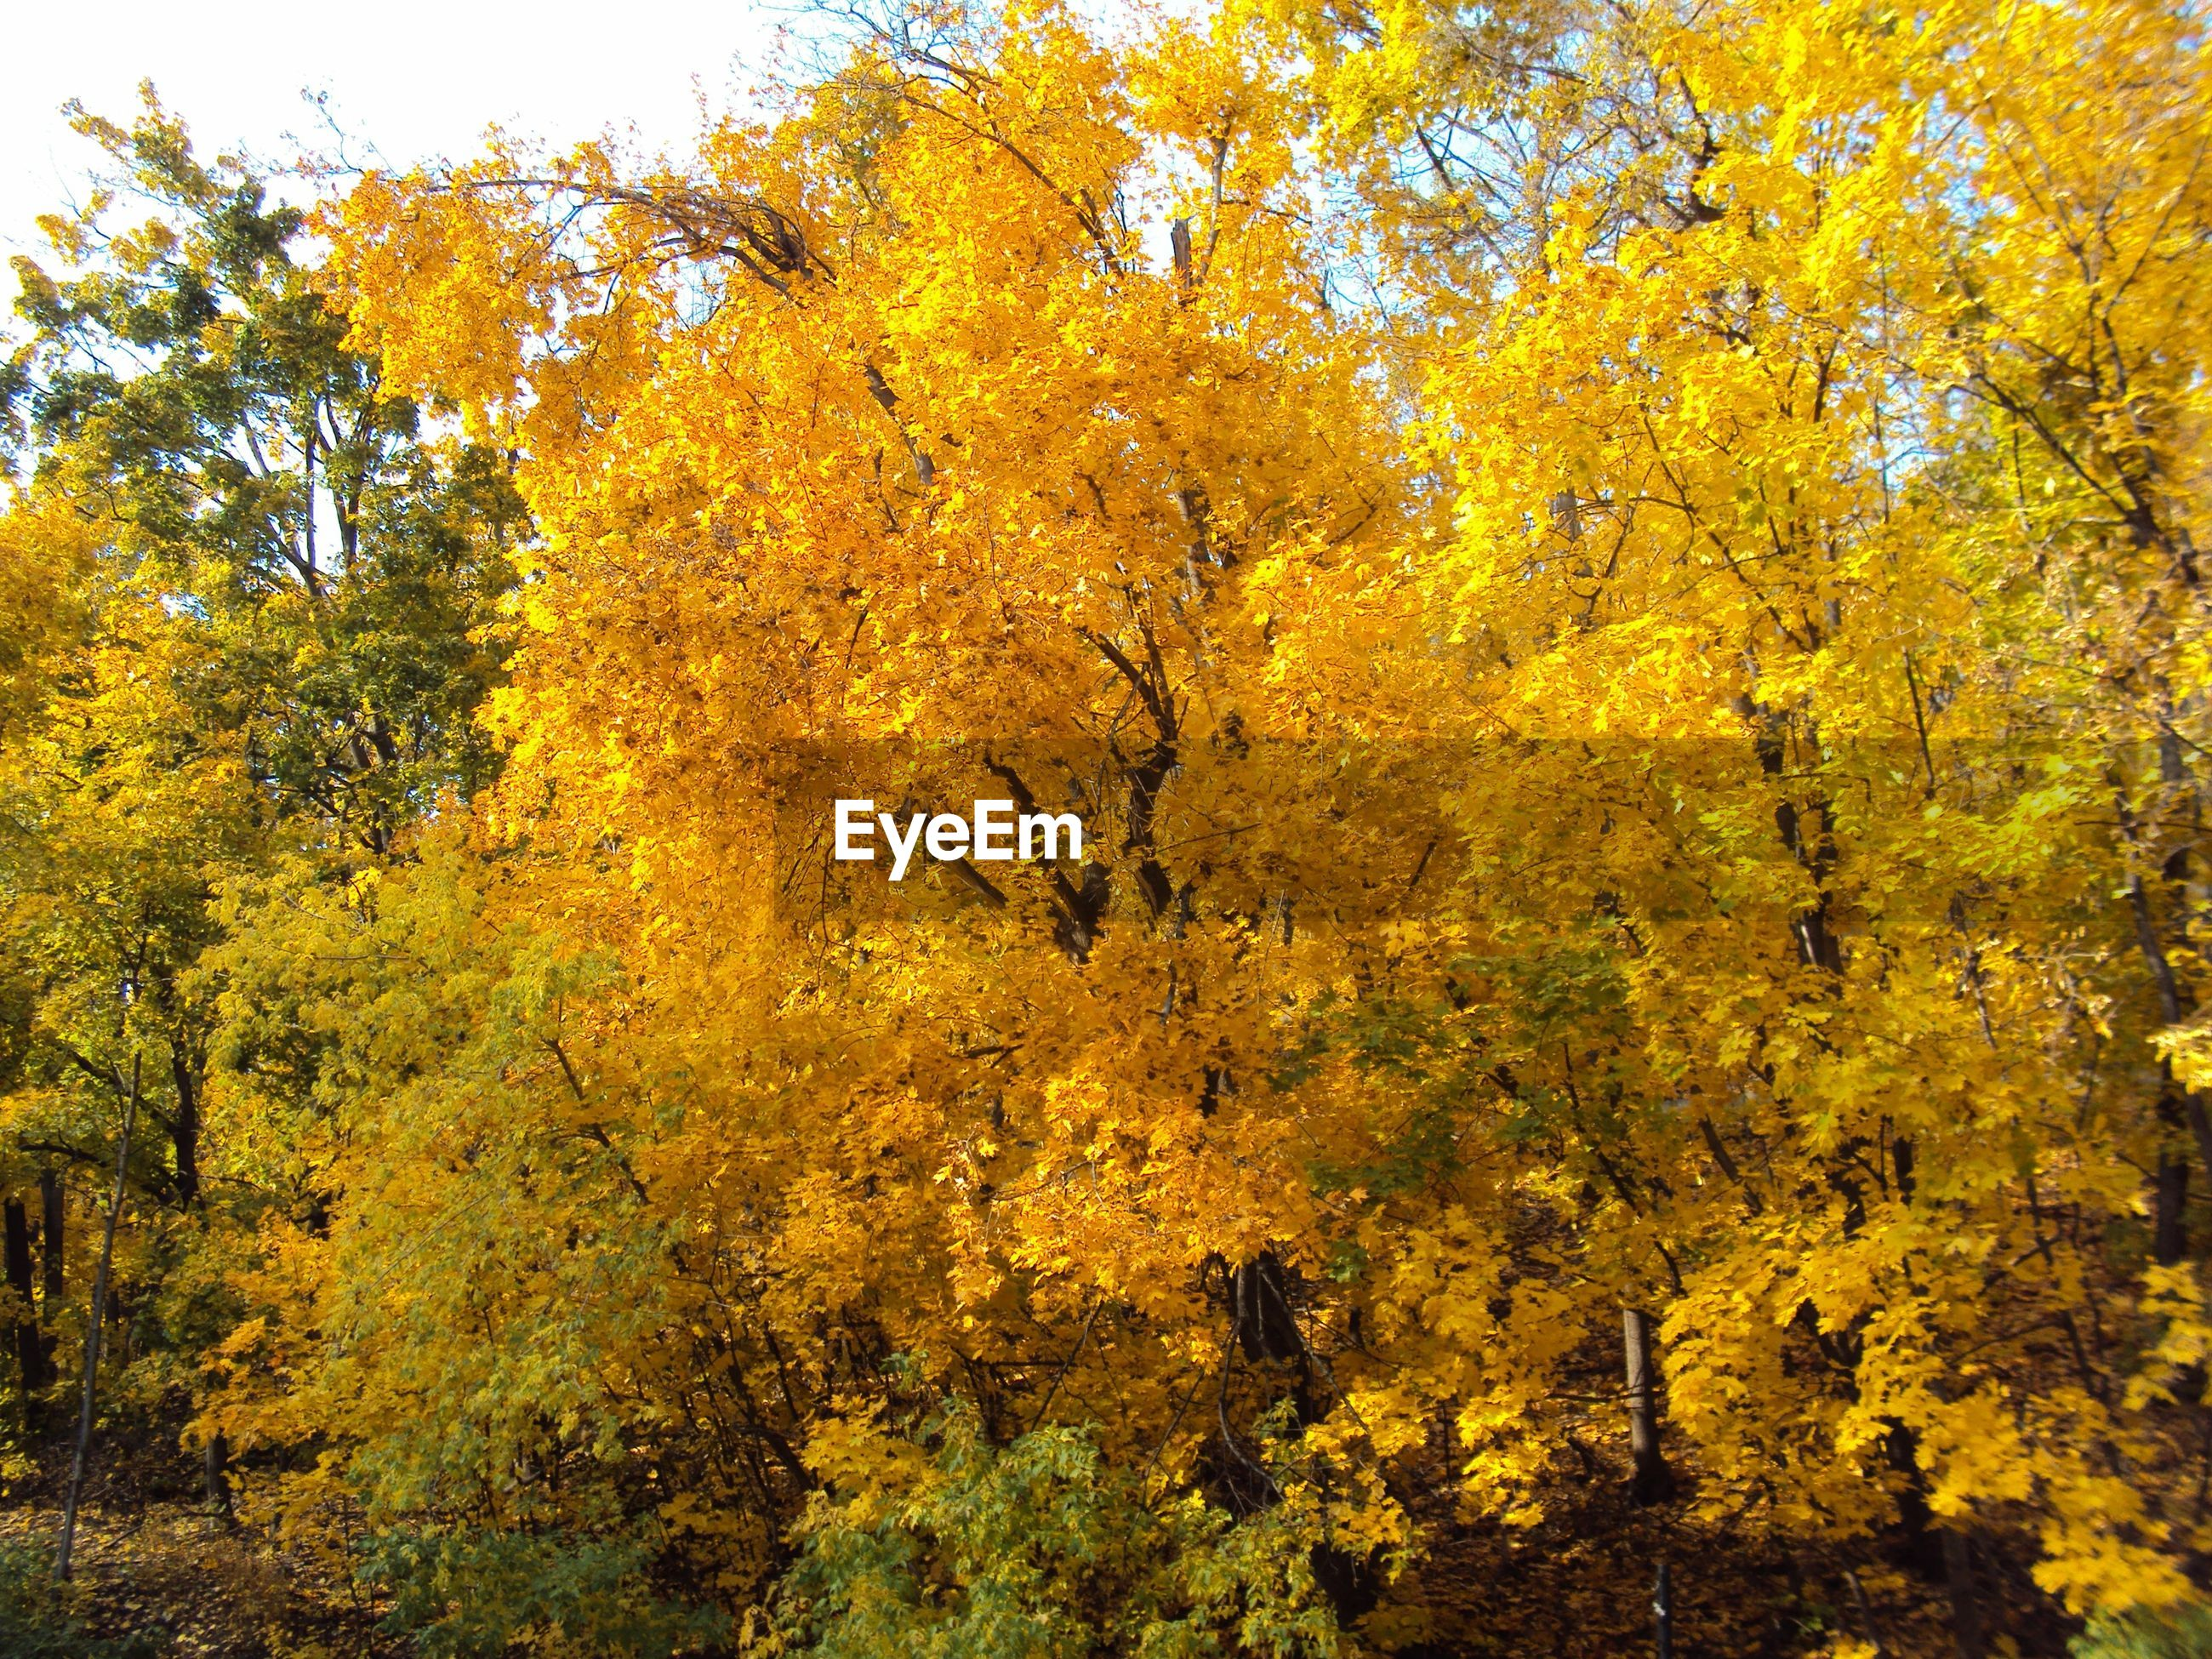 tree, yellow, autumn, growth, change, beauty in nature, season, nature, branch, tranquility, lush foliage, tranquil scene, scenics, leaf, green color, day, forest, no people, outdoors, orange color